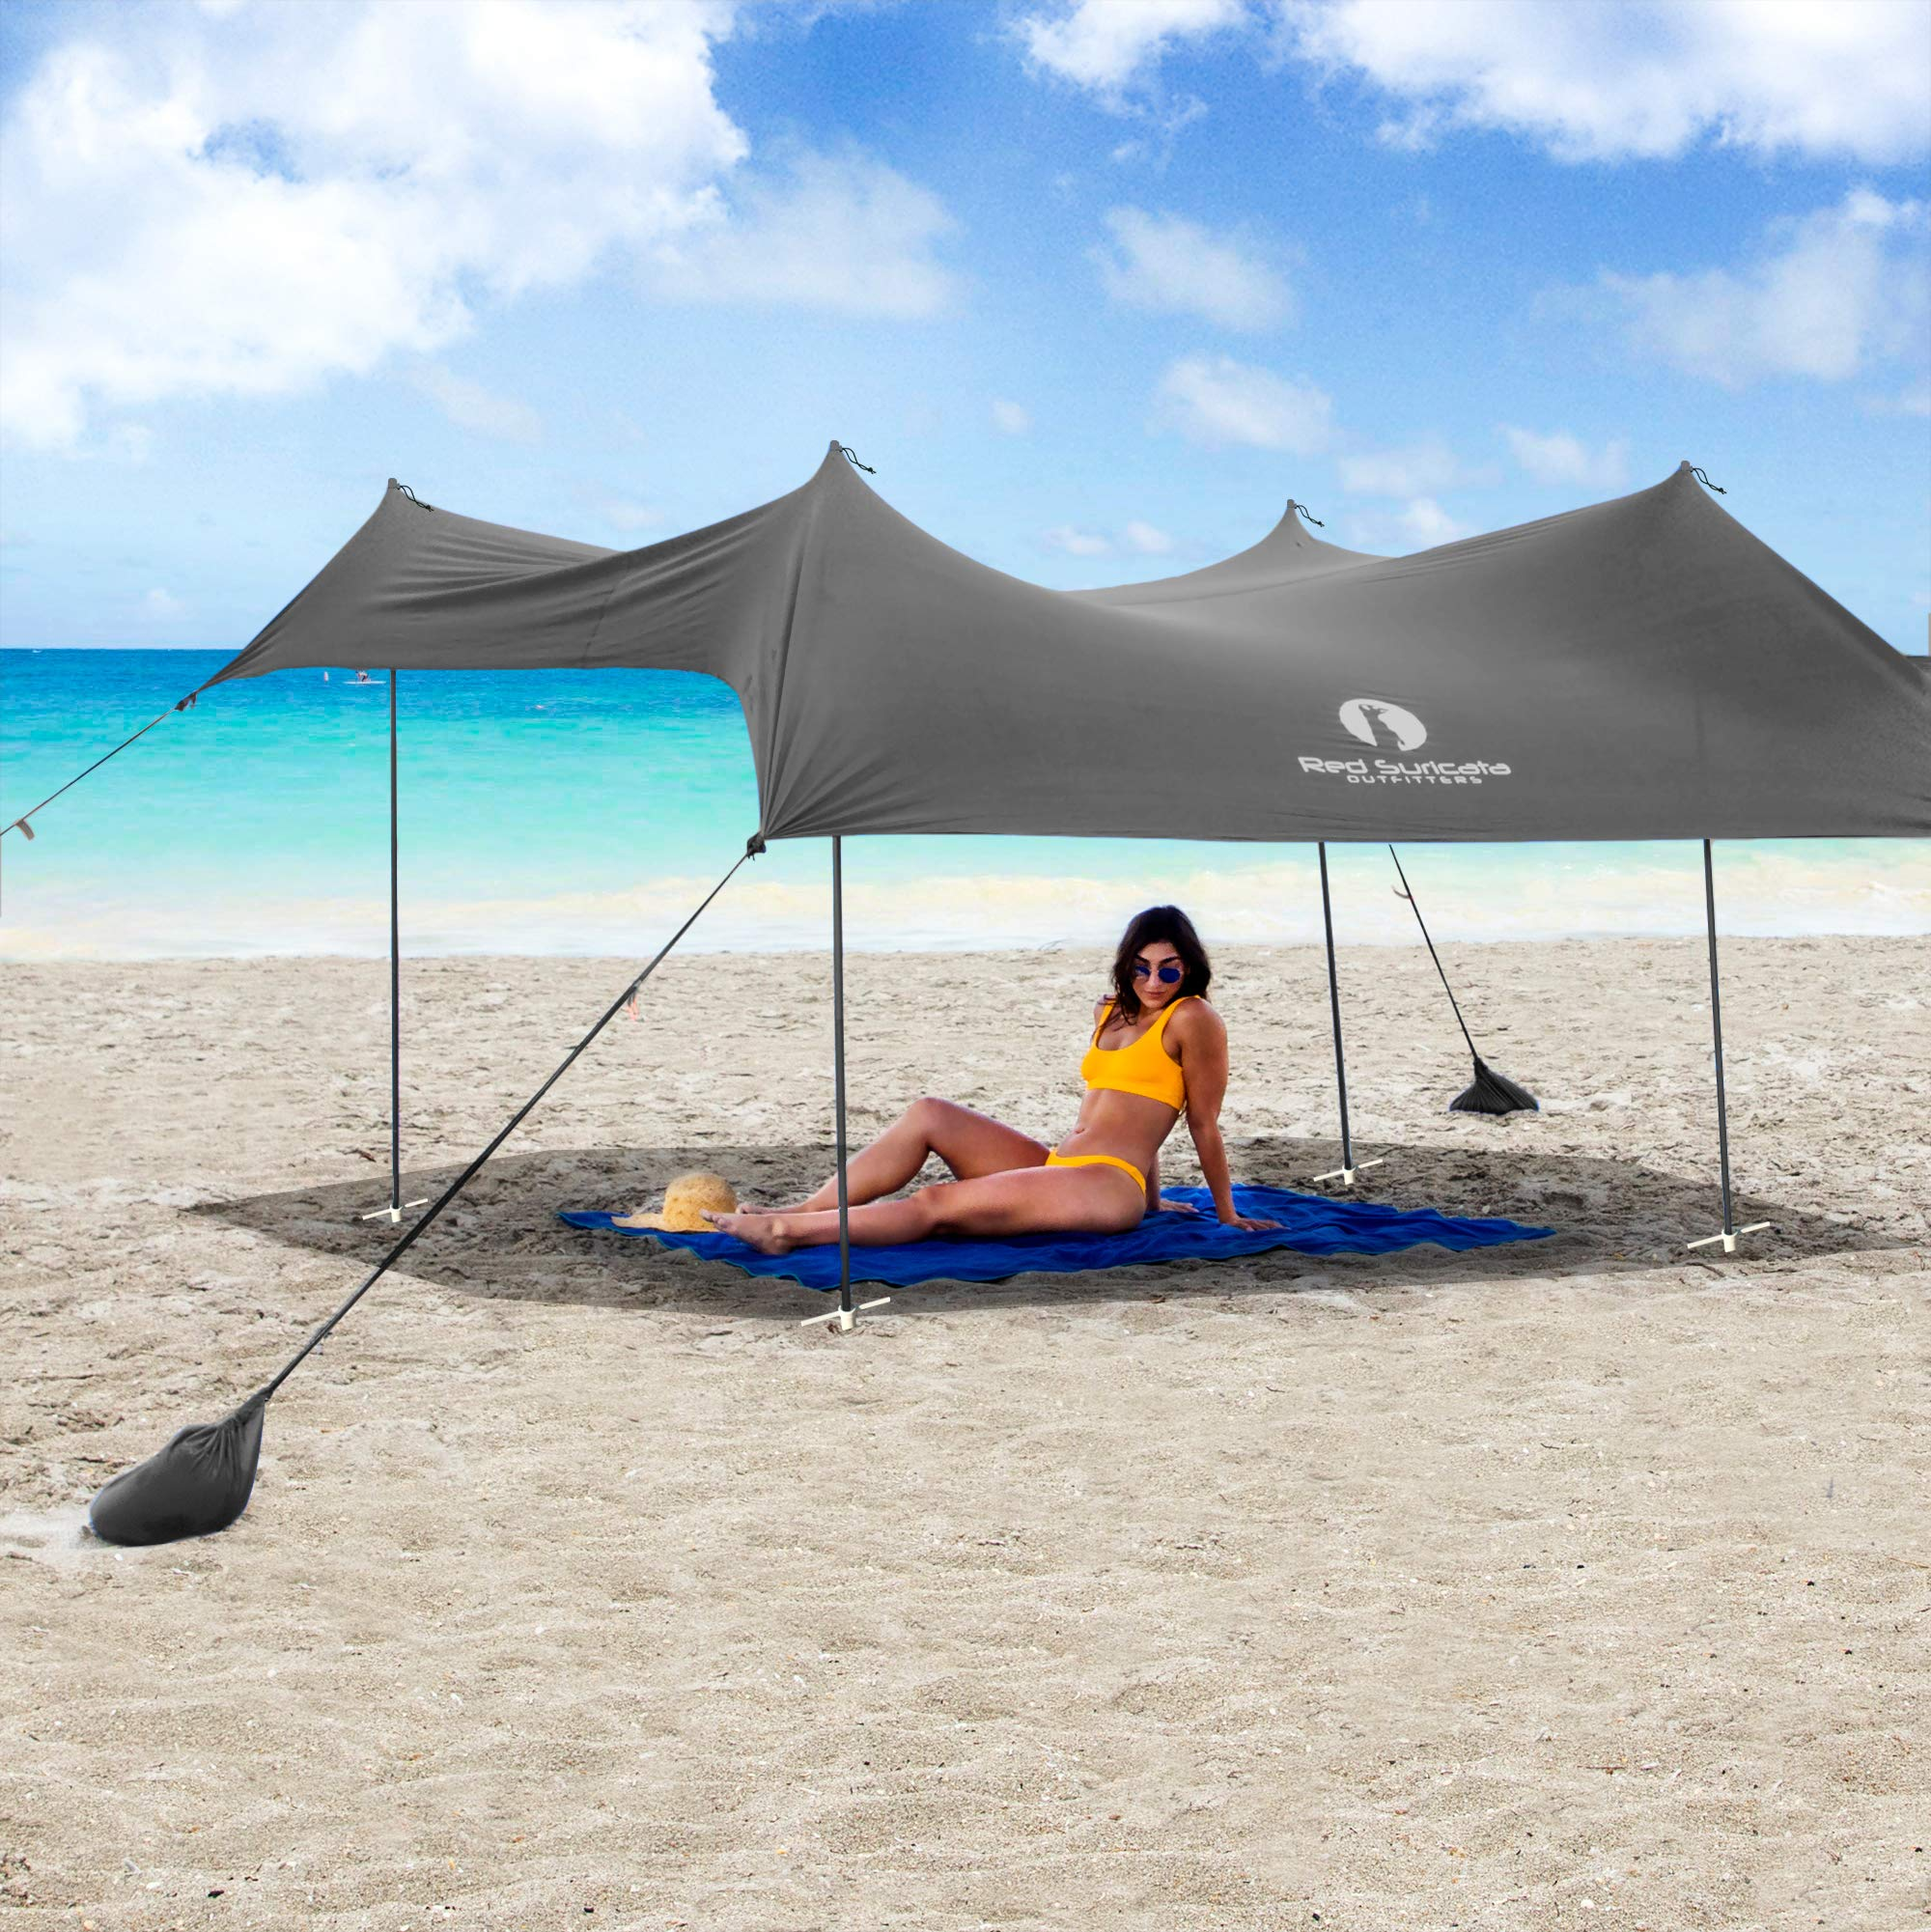 Red Suricata Family Beach Sunshade - Sun Shade Canopy | UPF50 UV Protection | Tent with 4 Aluminum Poles, 4 Pole Anchors, 4 Sandbag Anchors | Large & Portable Shelter Tarp (Grey, Large 10' x 9') by Red Suricata